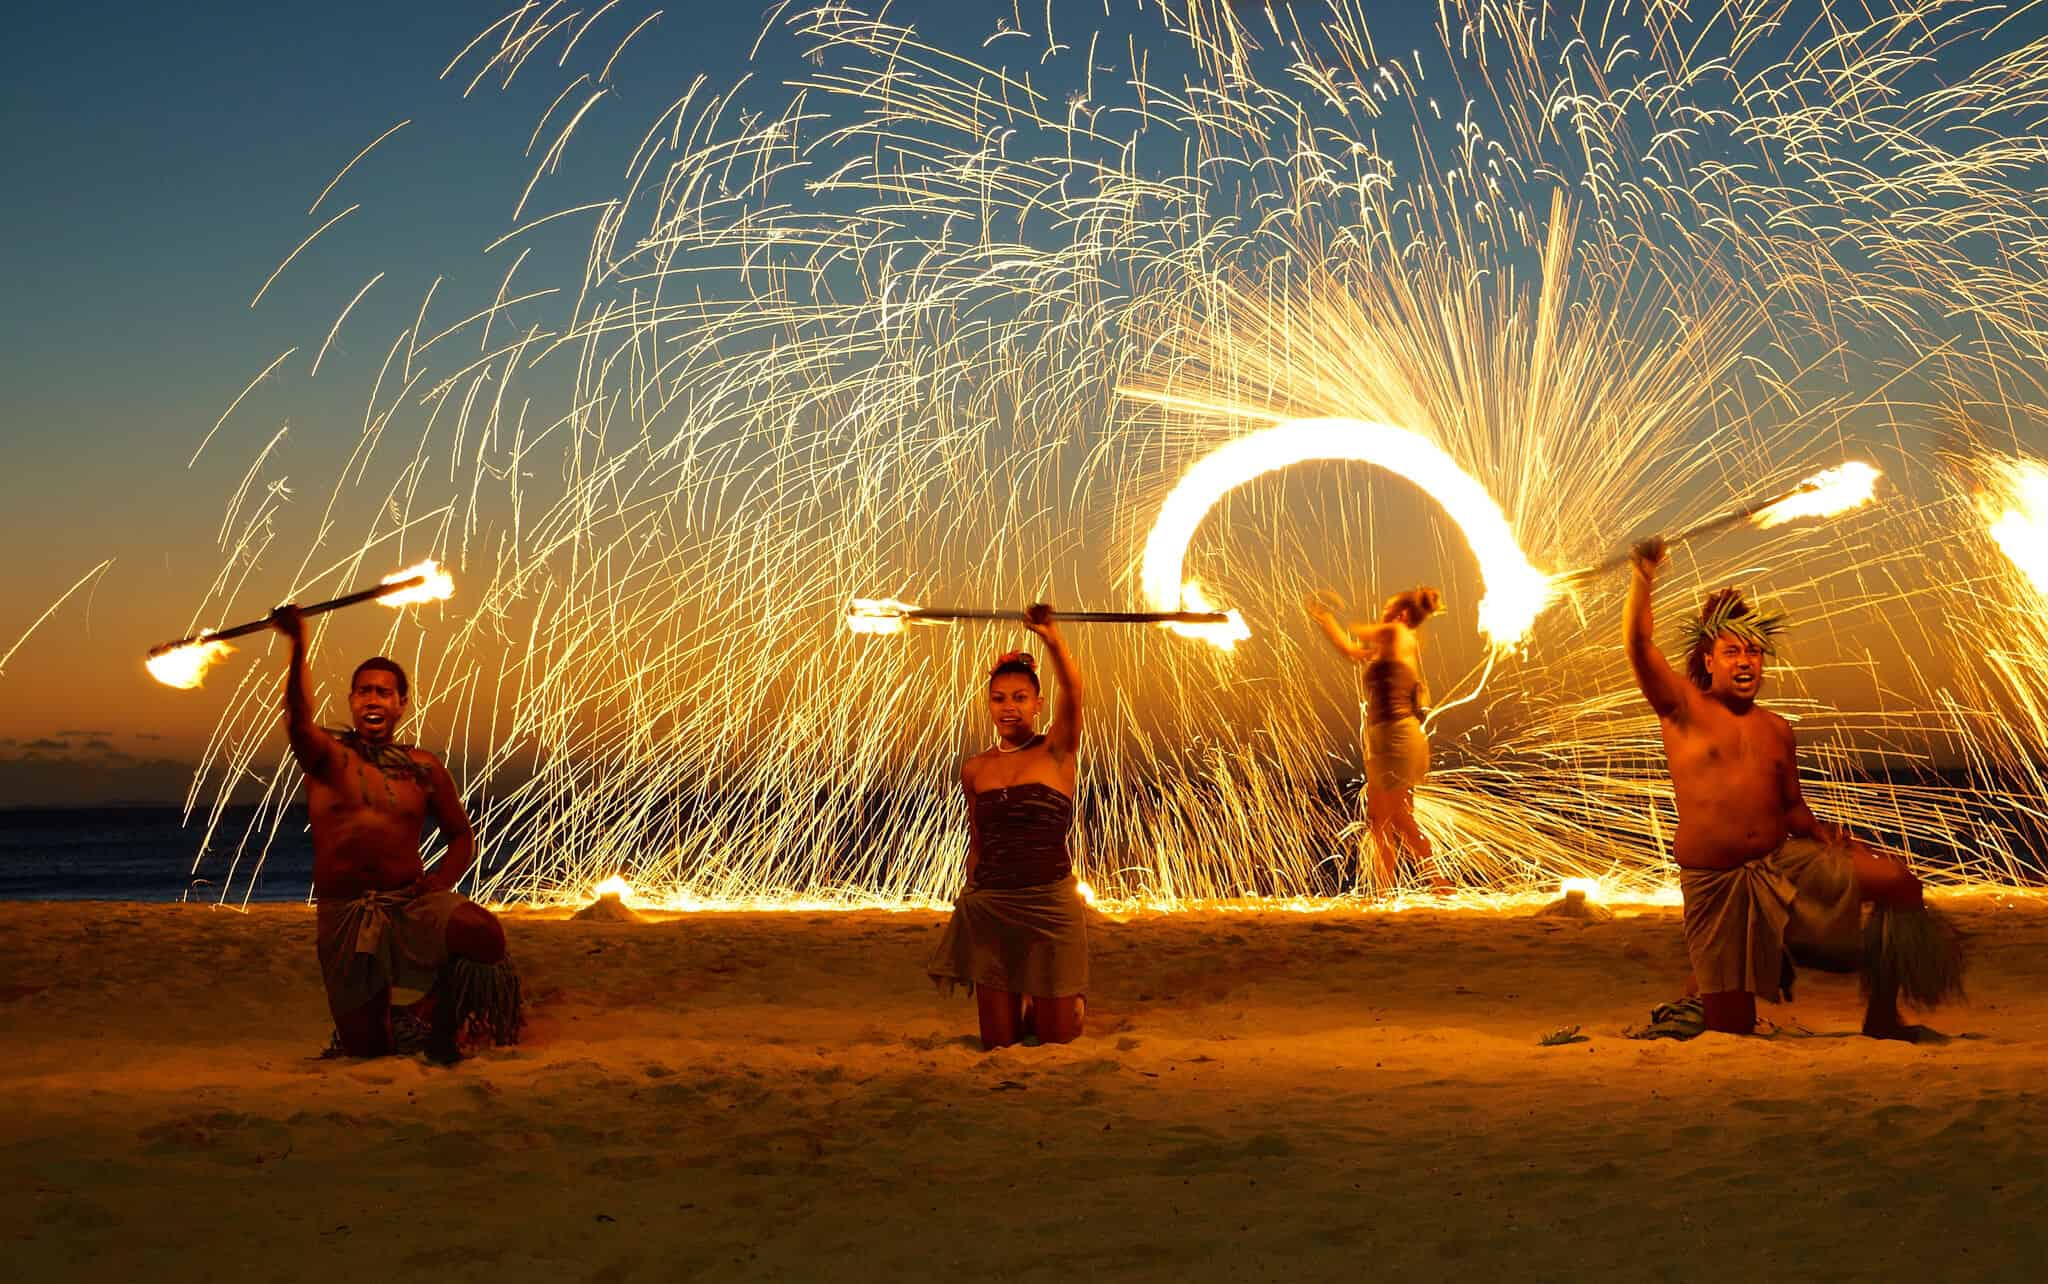 Fijian Fire Show - Photo by Romain Pontida